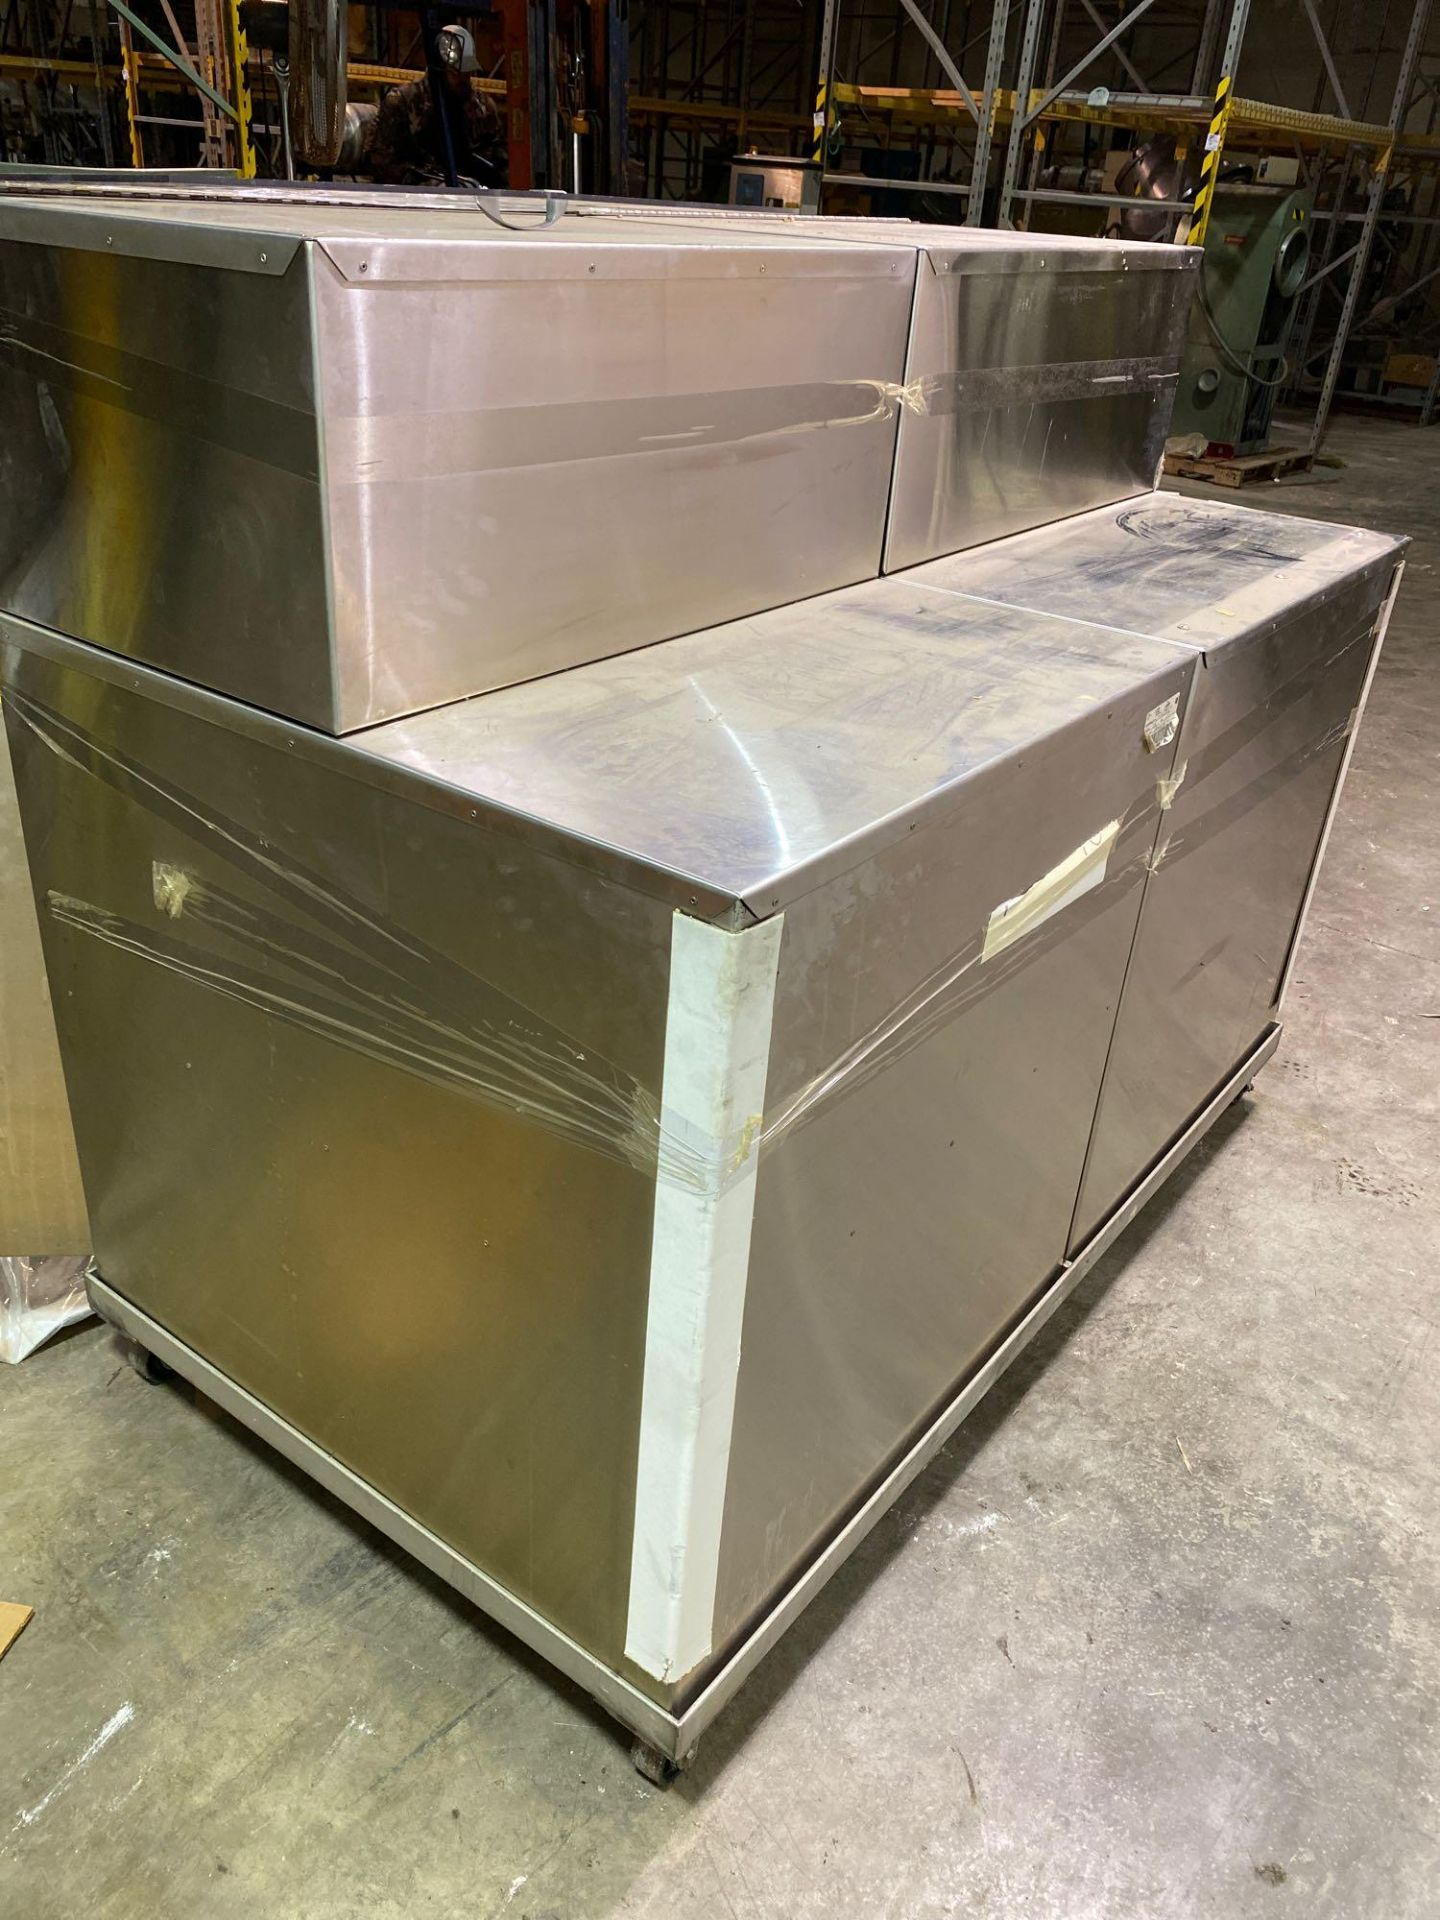 Mobile Stainless Steel Cabinet with Sifter Sieves - Assorted Sizes